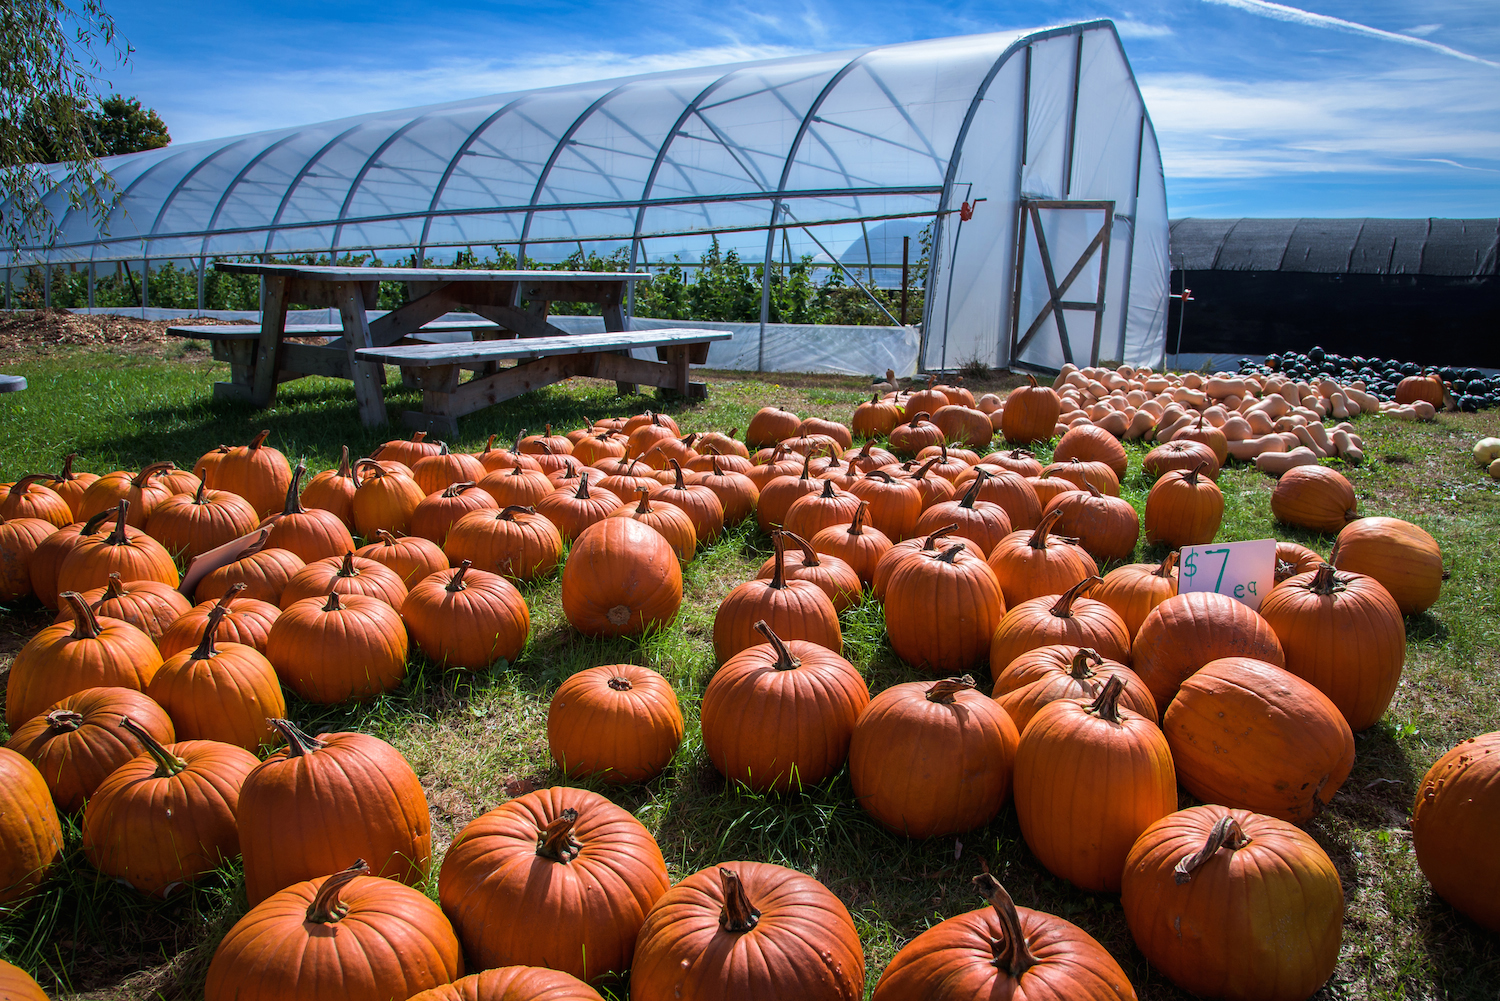 Pumpkins for sale at Orchard Ridge Farm in Gorham.